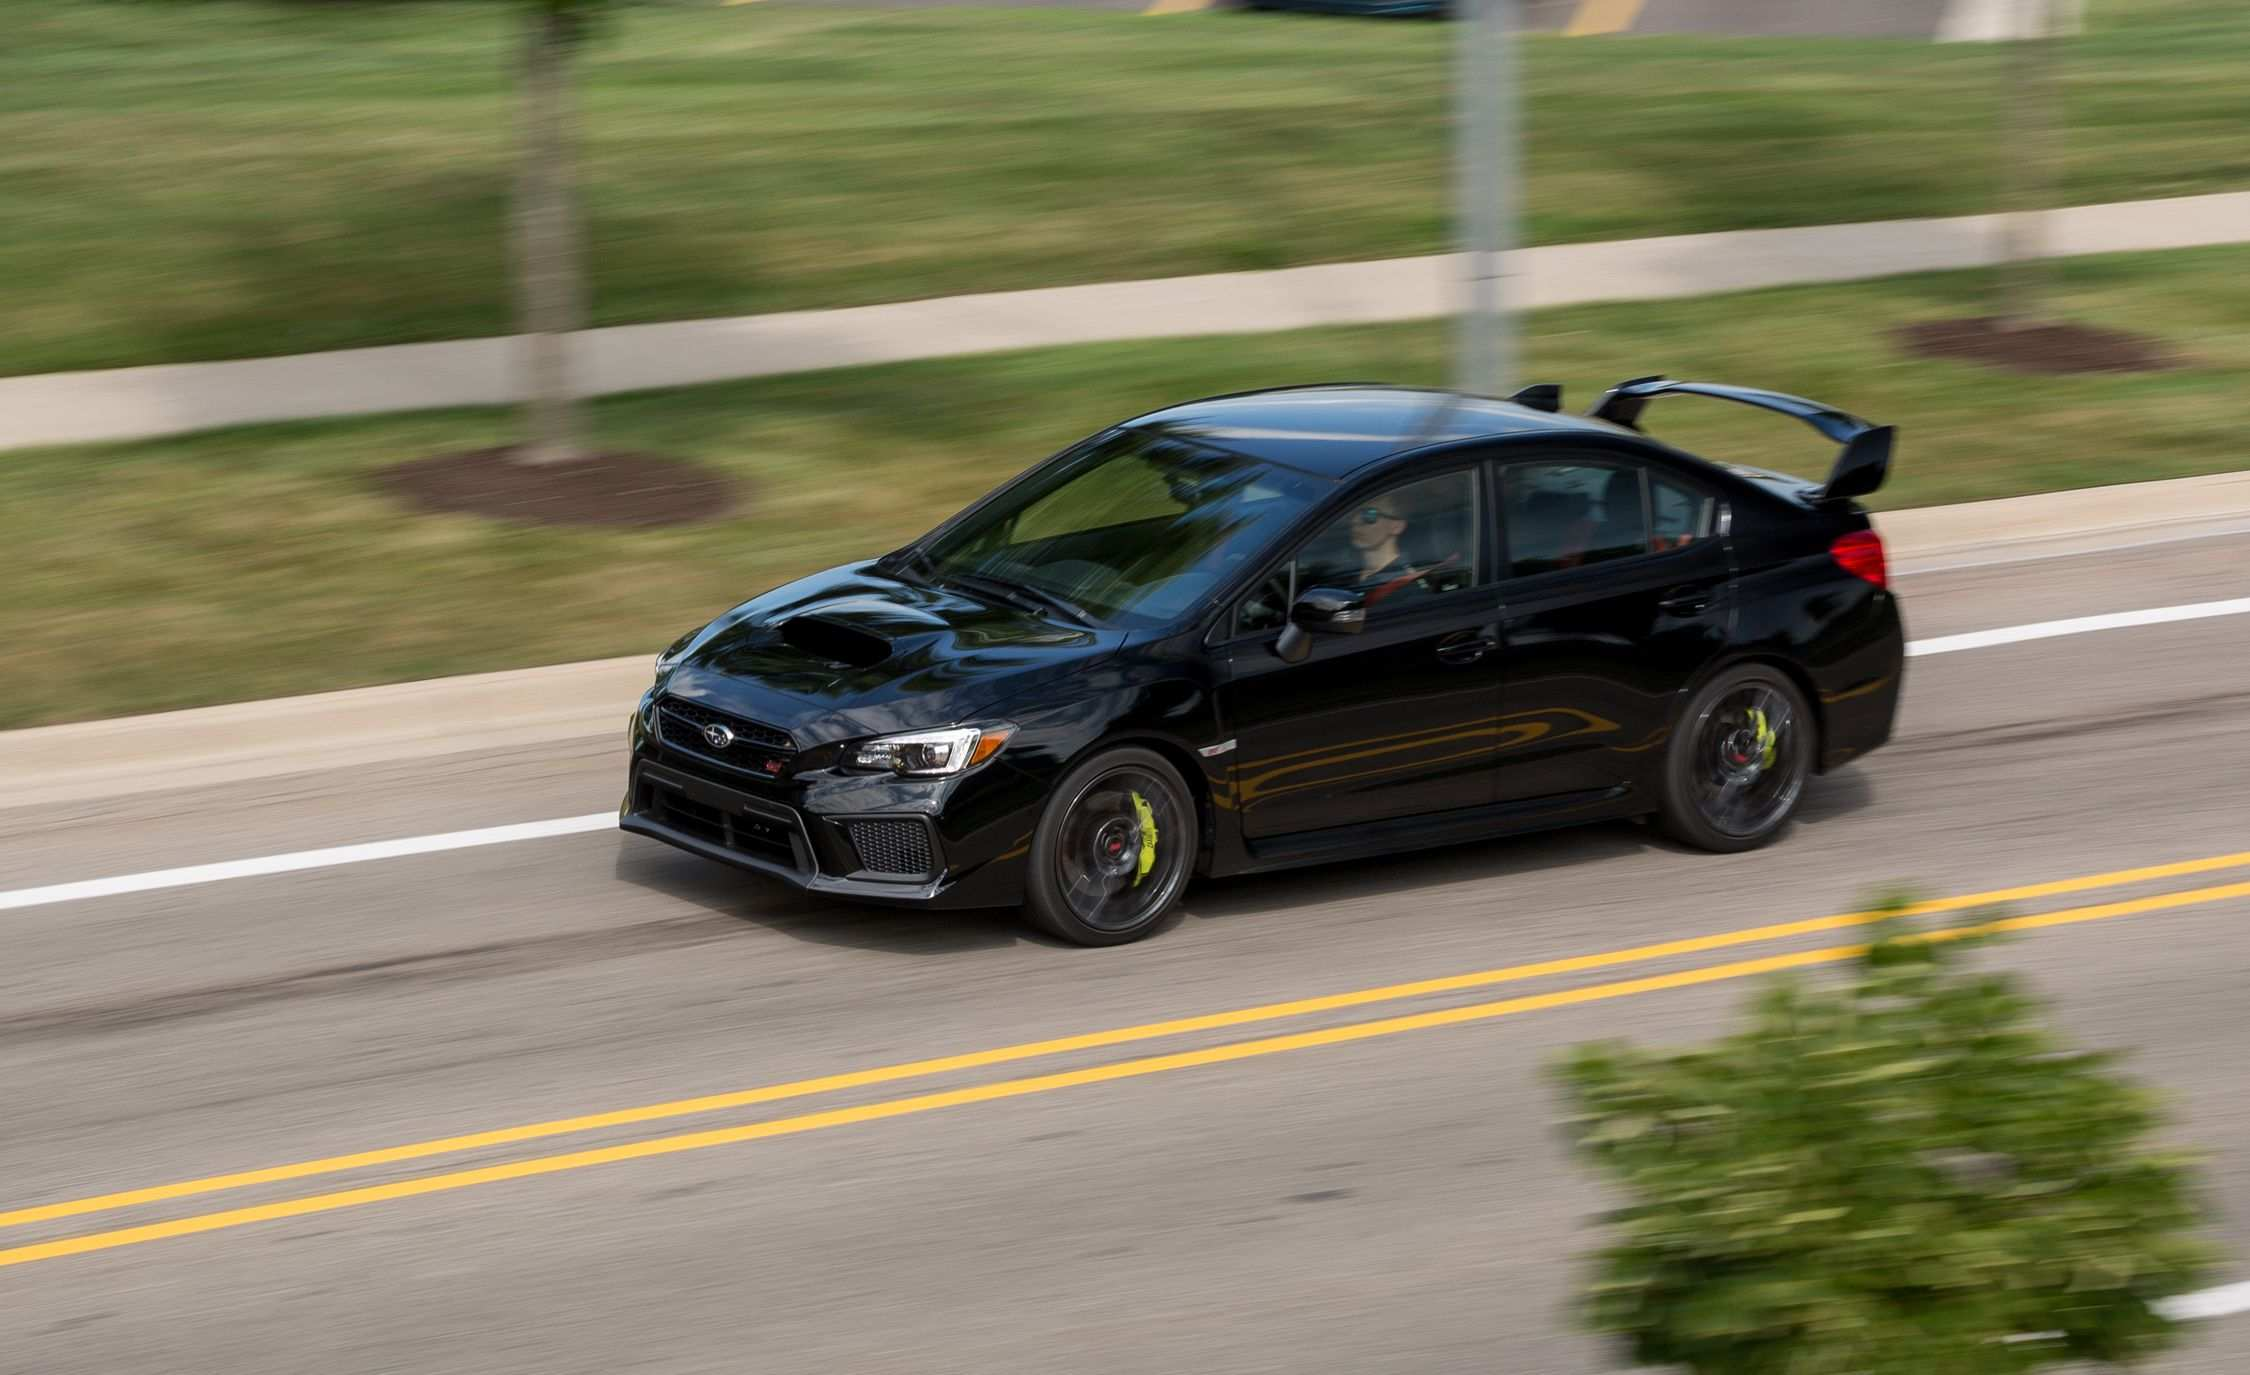 49 New Subaru Impreza Sti 2019 Review And Release Date